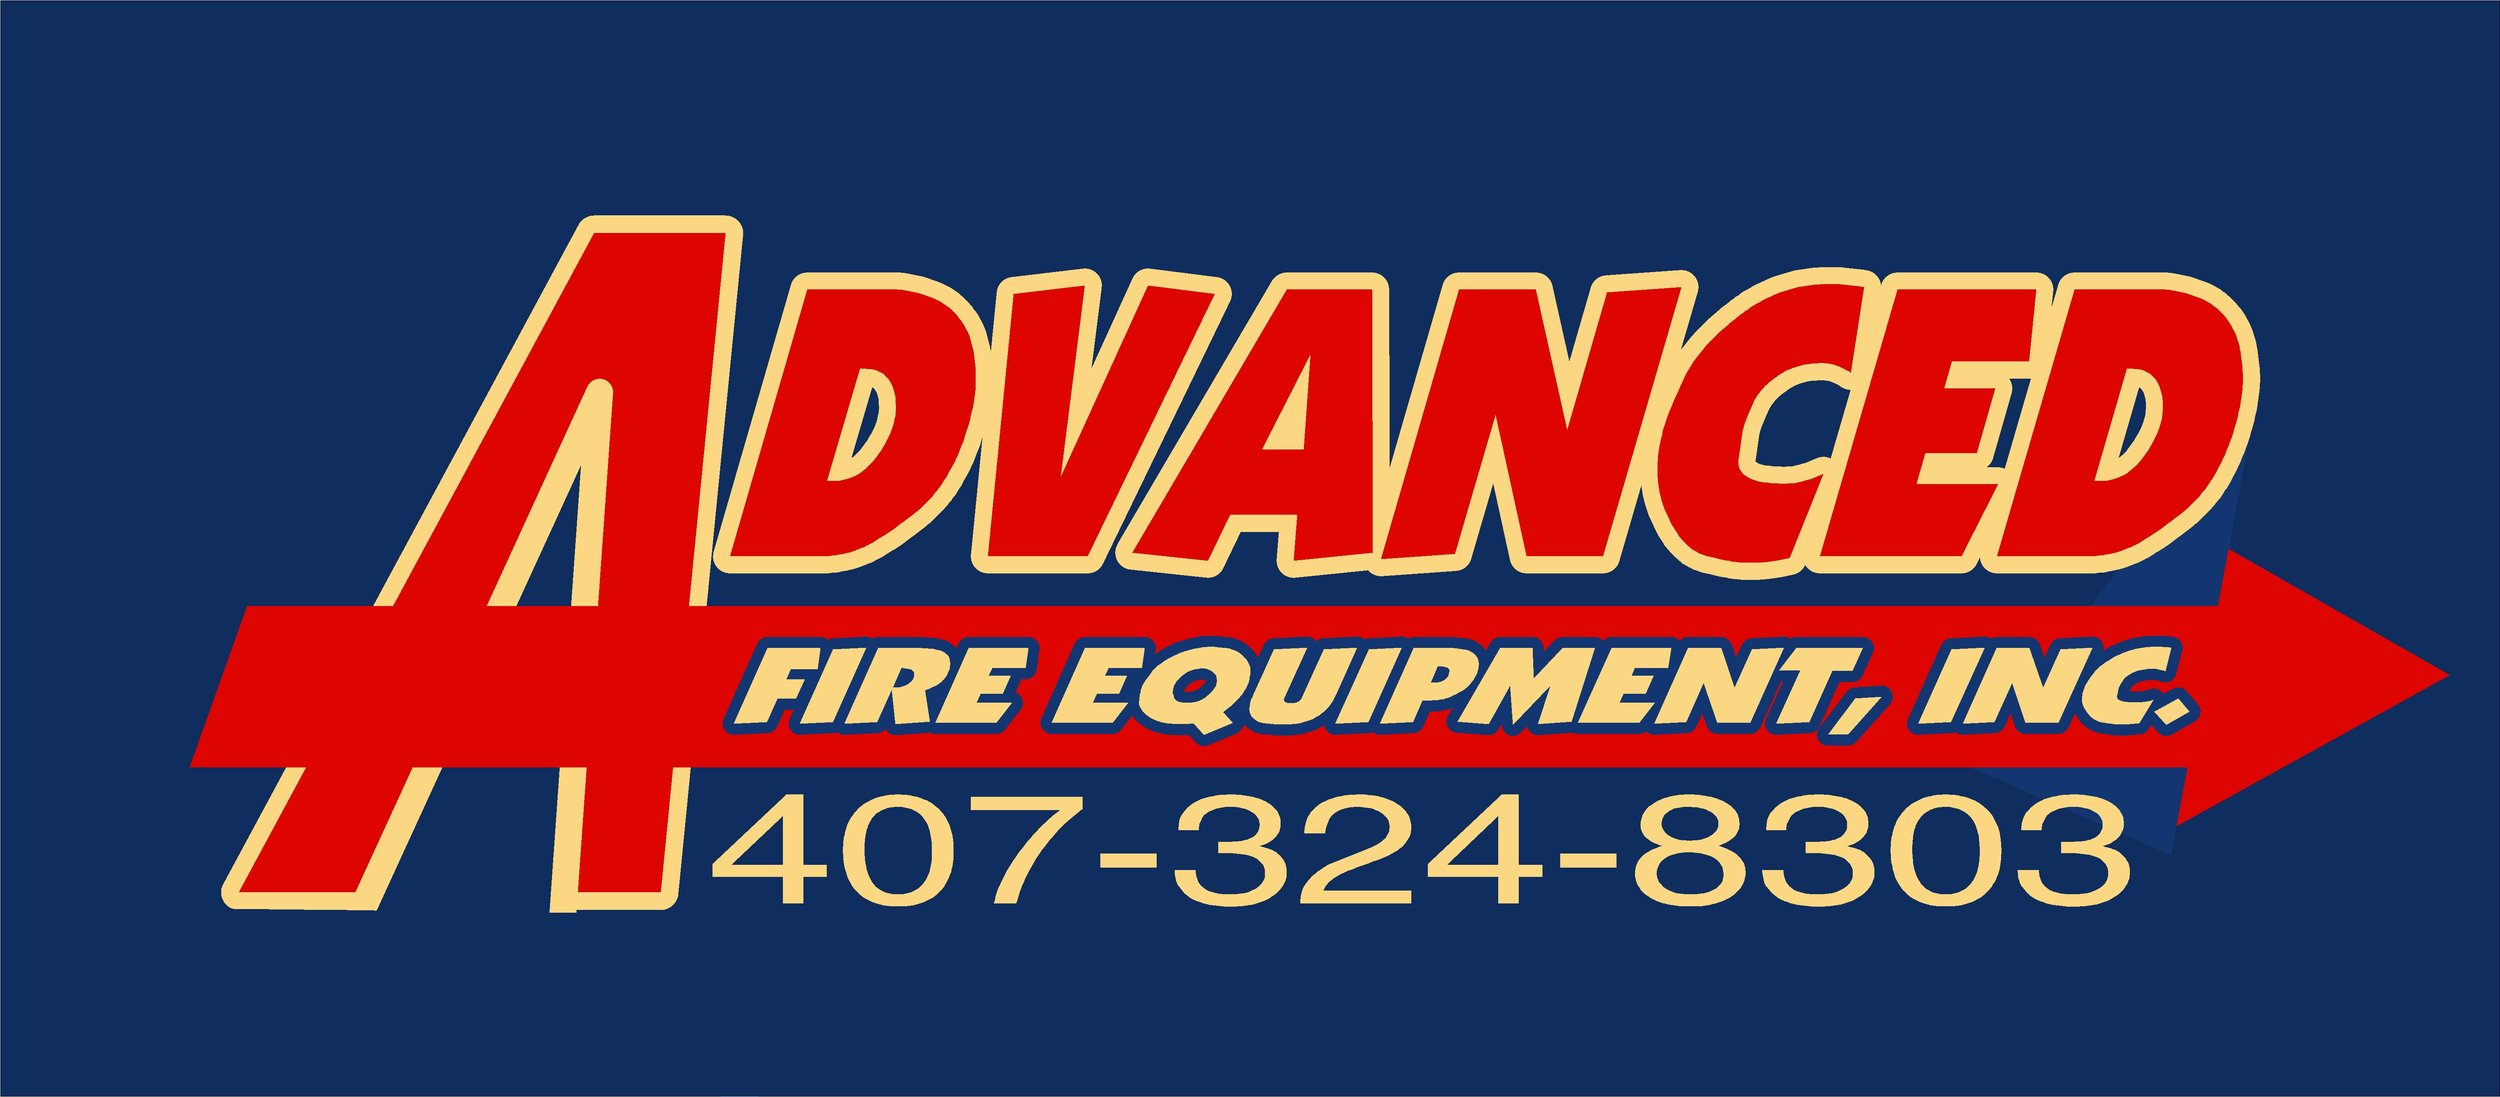 Advanced_Fire_Equipment,_Inc LOGO.jpg